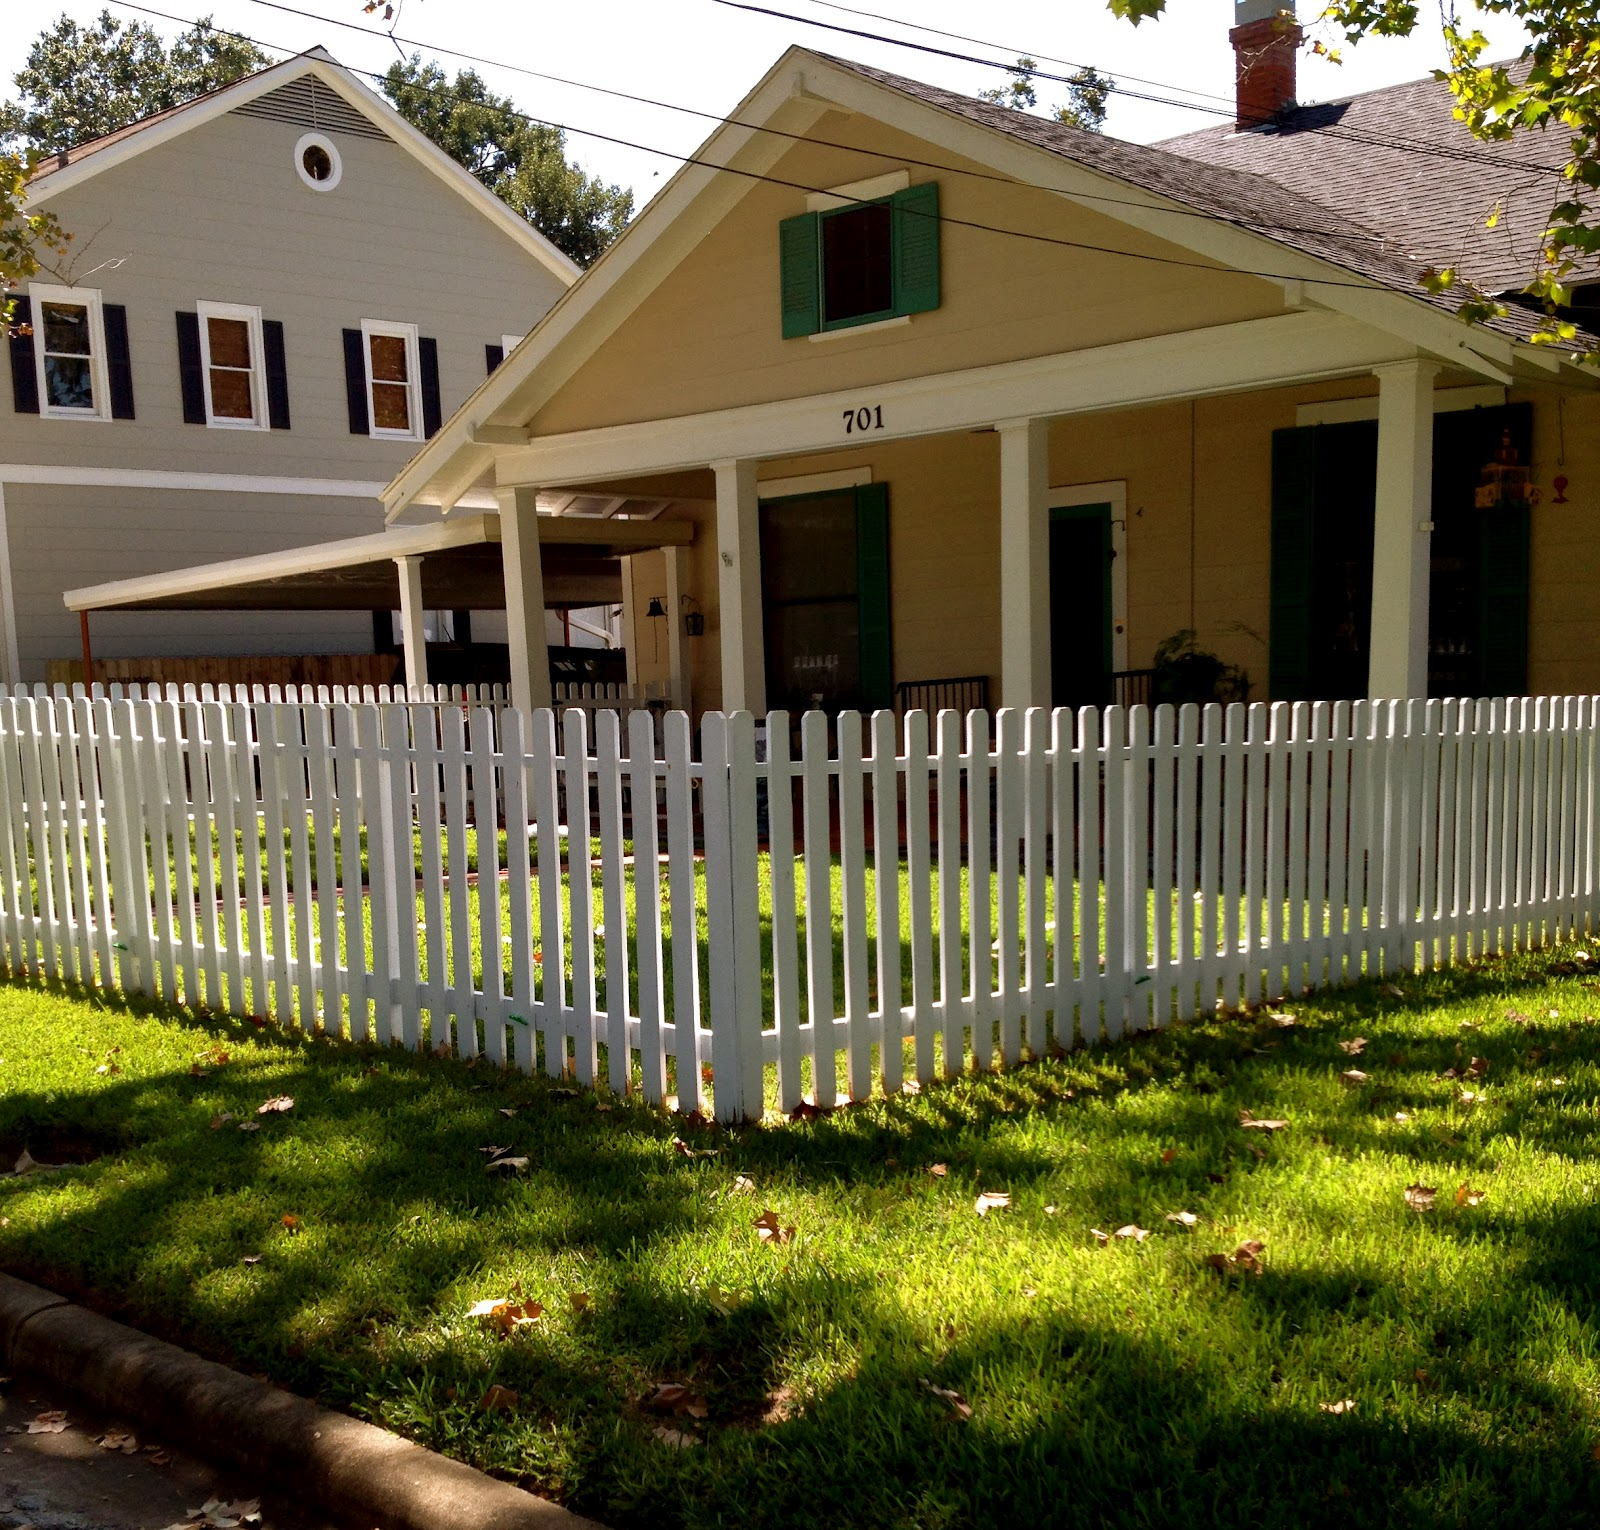 the brenham house white picket fences in brenham texas. Black Bedroom Furniture Sets. Home Design Ideas